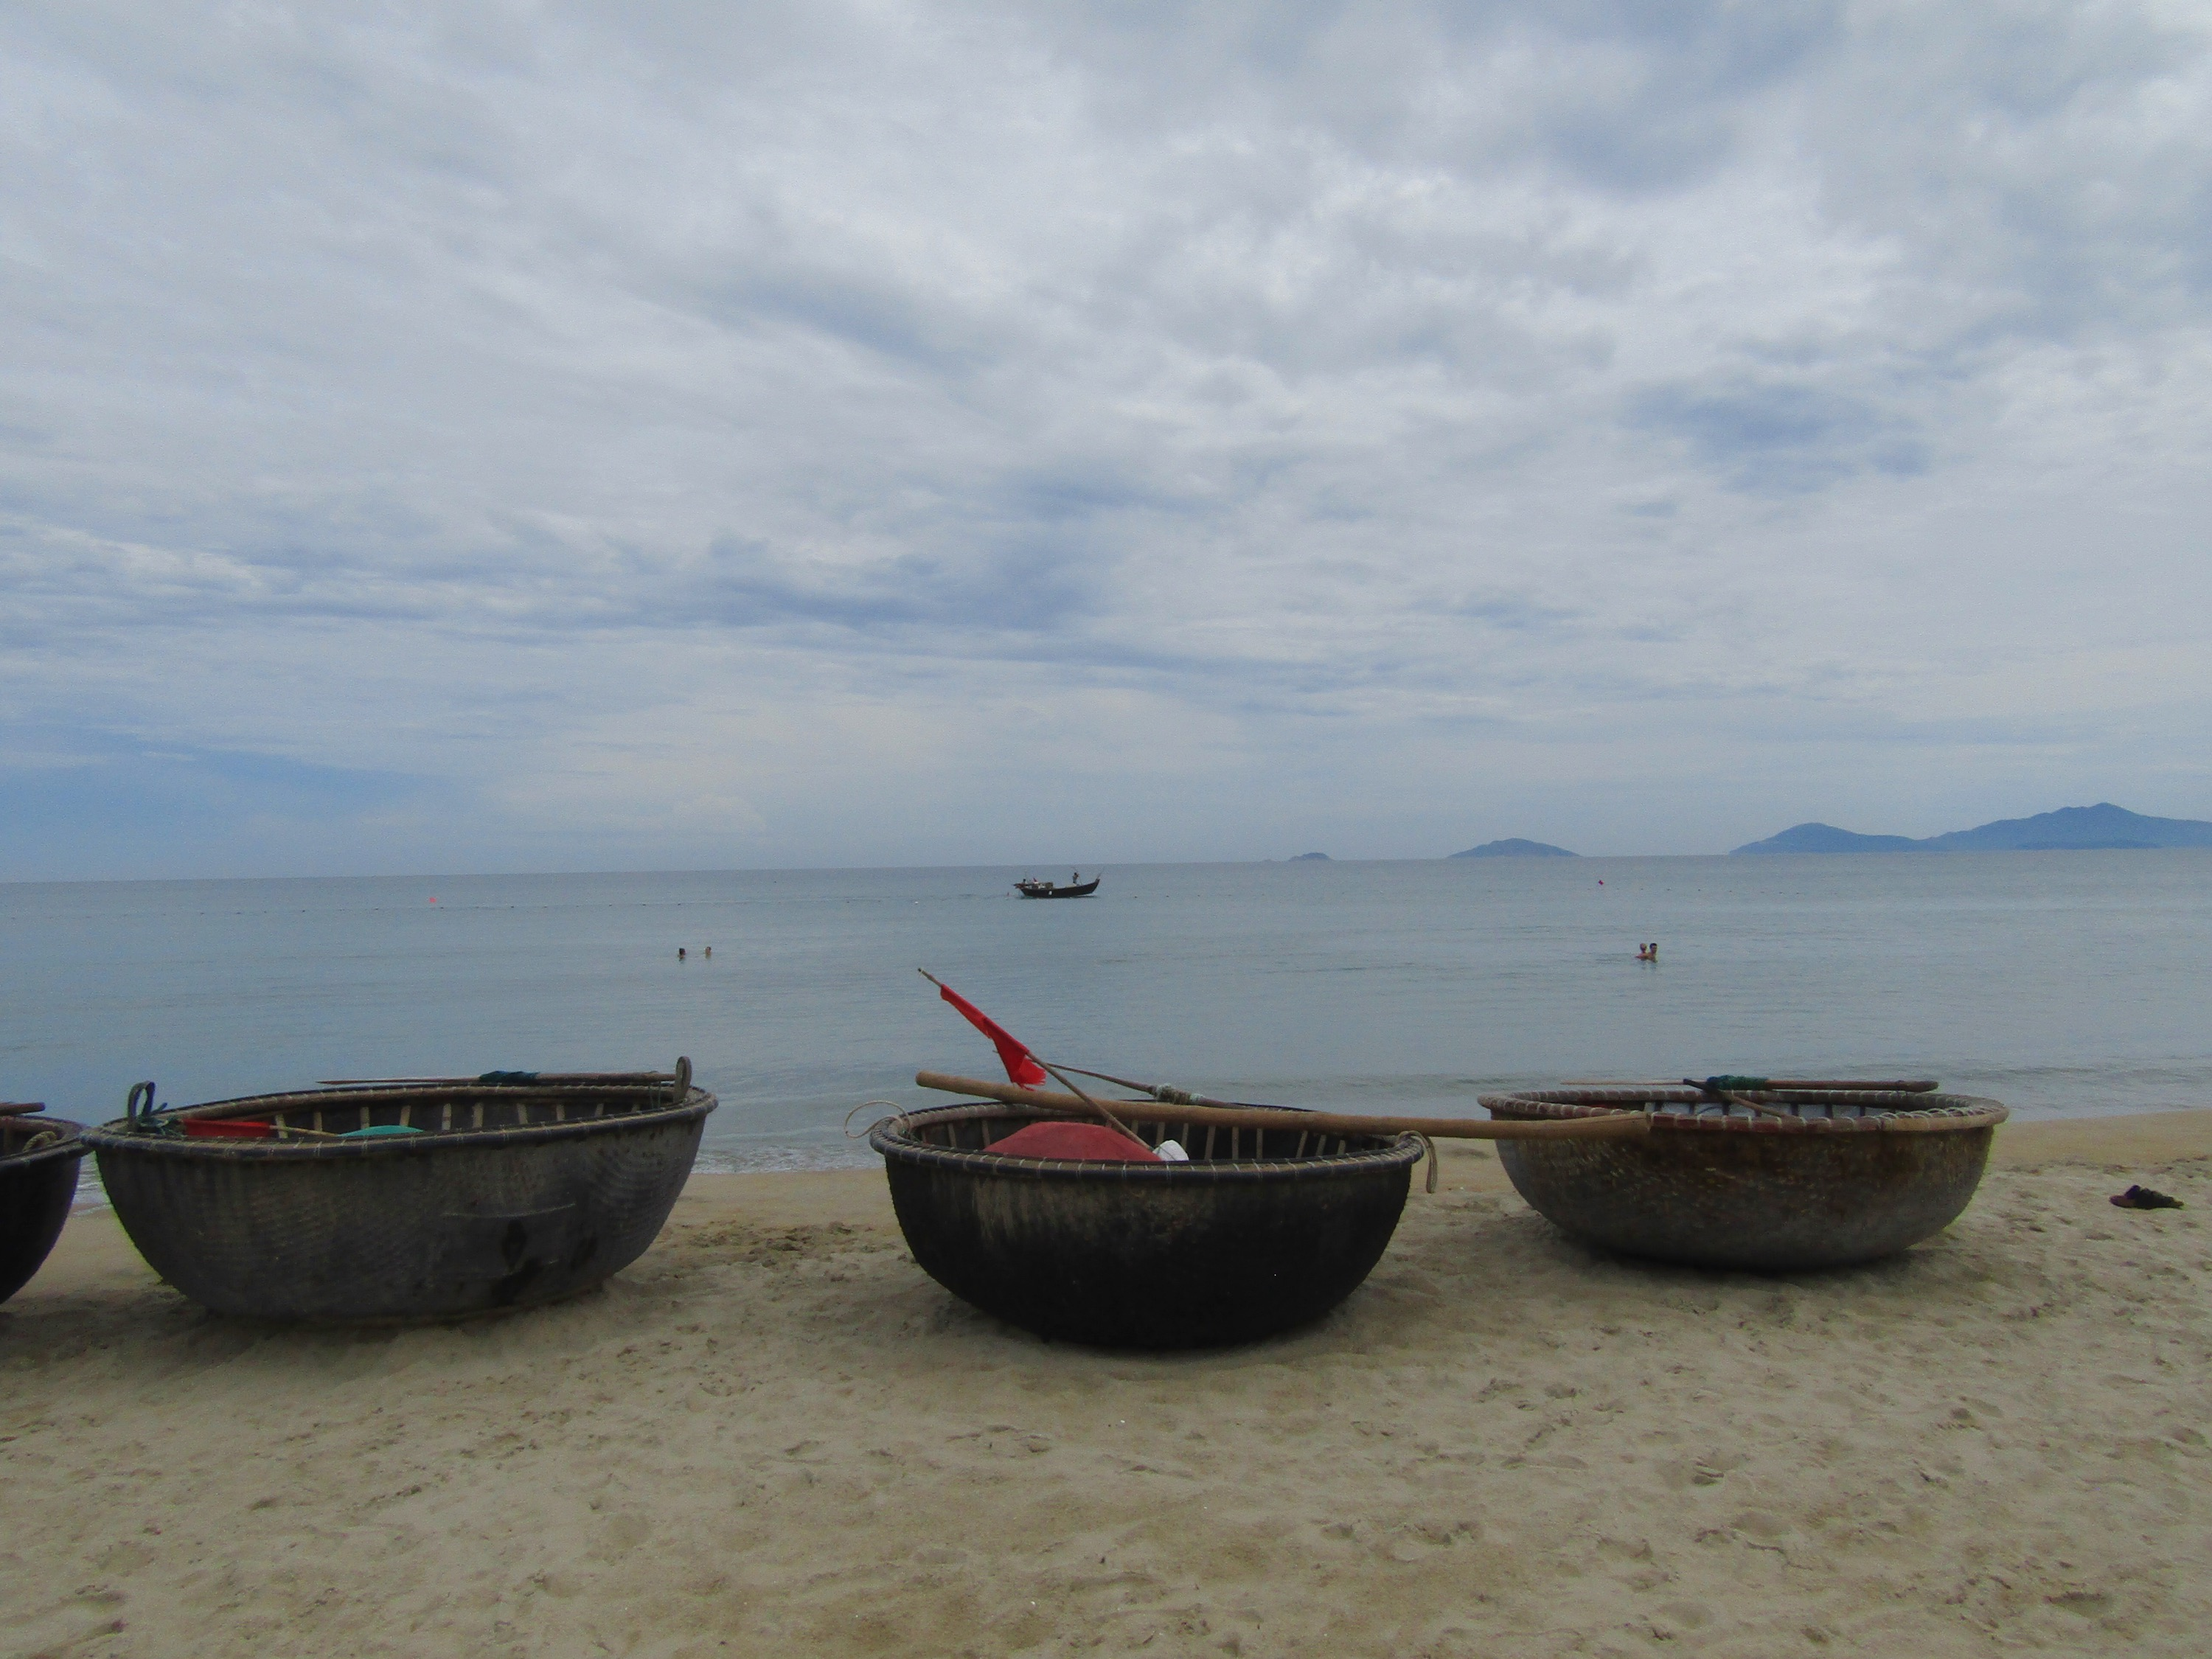 Several bamboo bowl boats were lined up on the beach. Local craftsmen have been making the boats for centuries, using a mixture of tree resin and rice bran to waterproof the vessels. They seem impossible to manuever, but the bowl captains have mastered it!